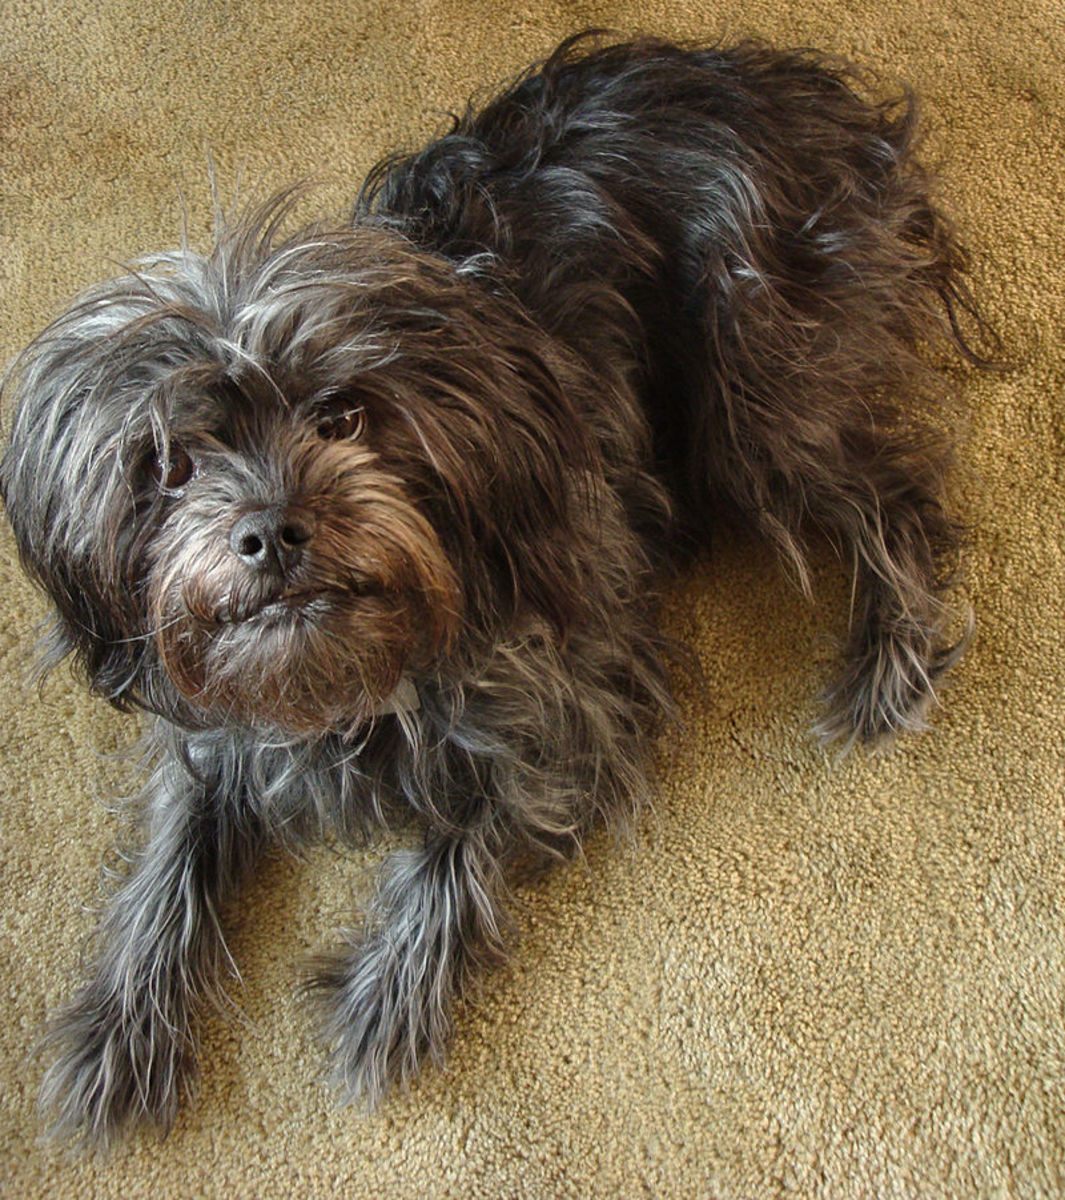 Pictured here is a grey Affenpinscher.  Although most in this breed maintain a solid black coloration, the Affenpinscher comes in a wide array of colors.